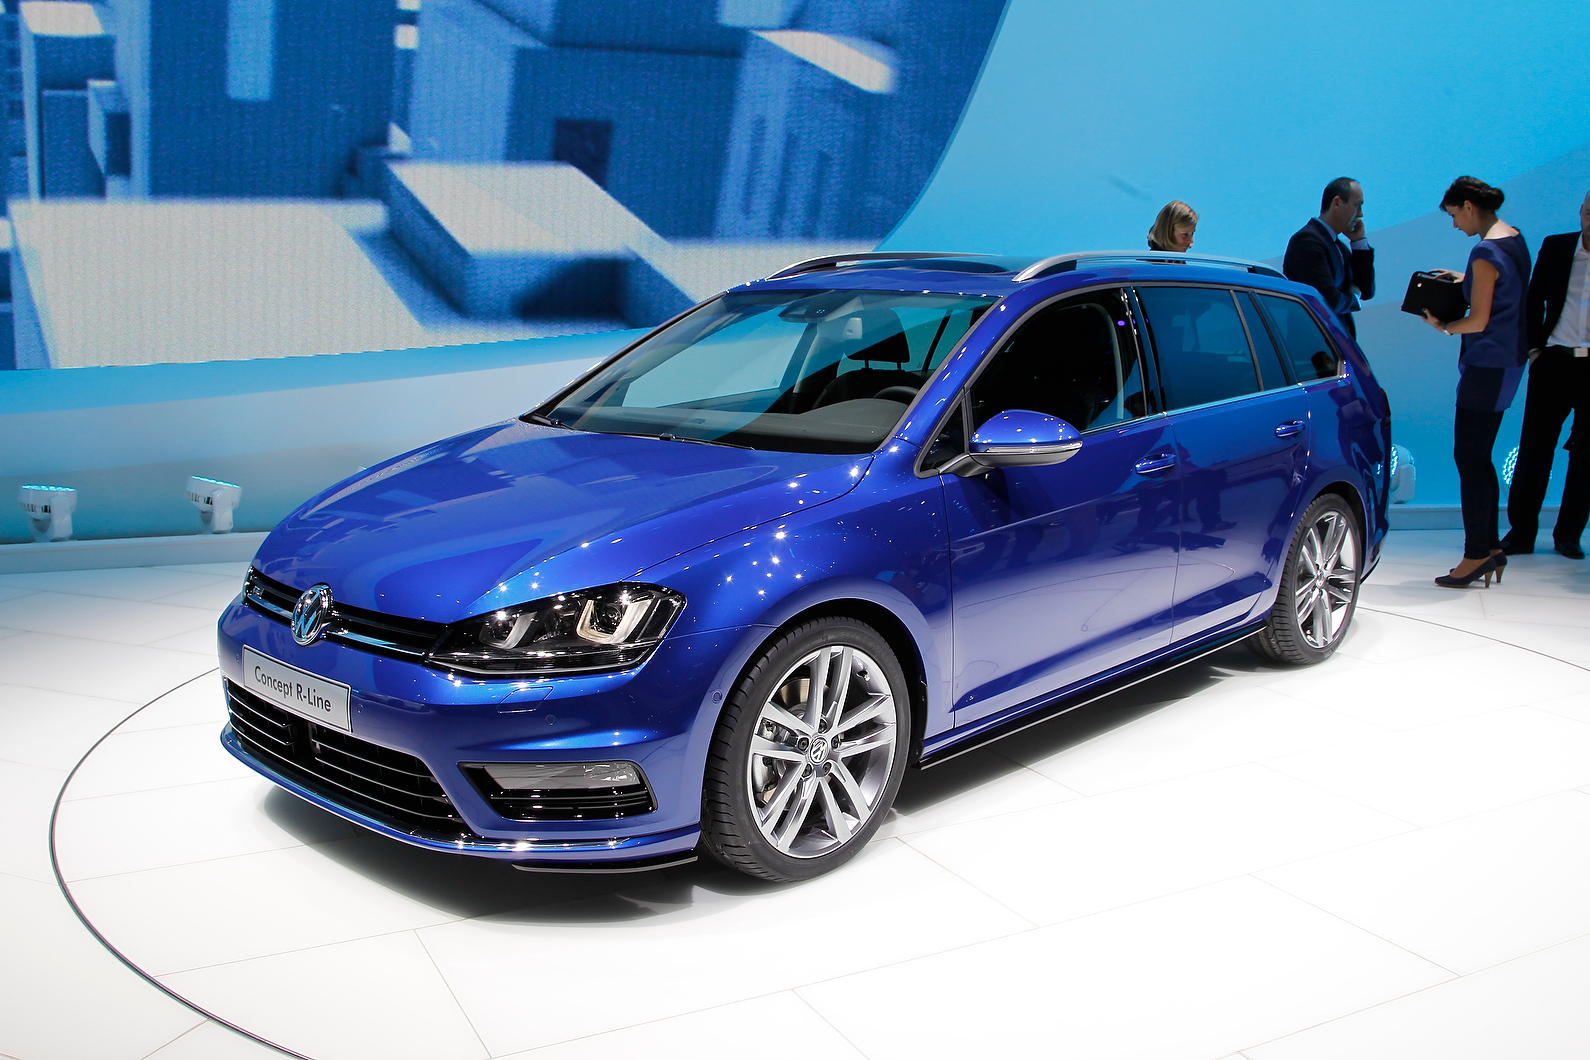 VW unveiled the new Golf GTD at the Geneva show.